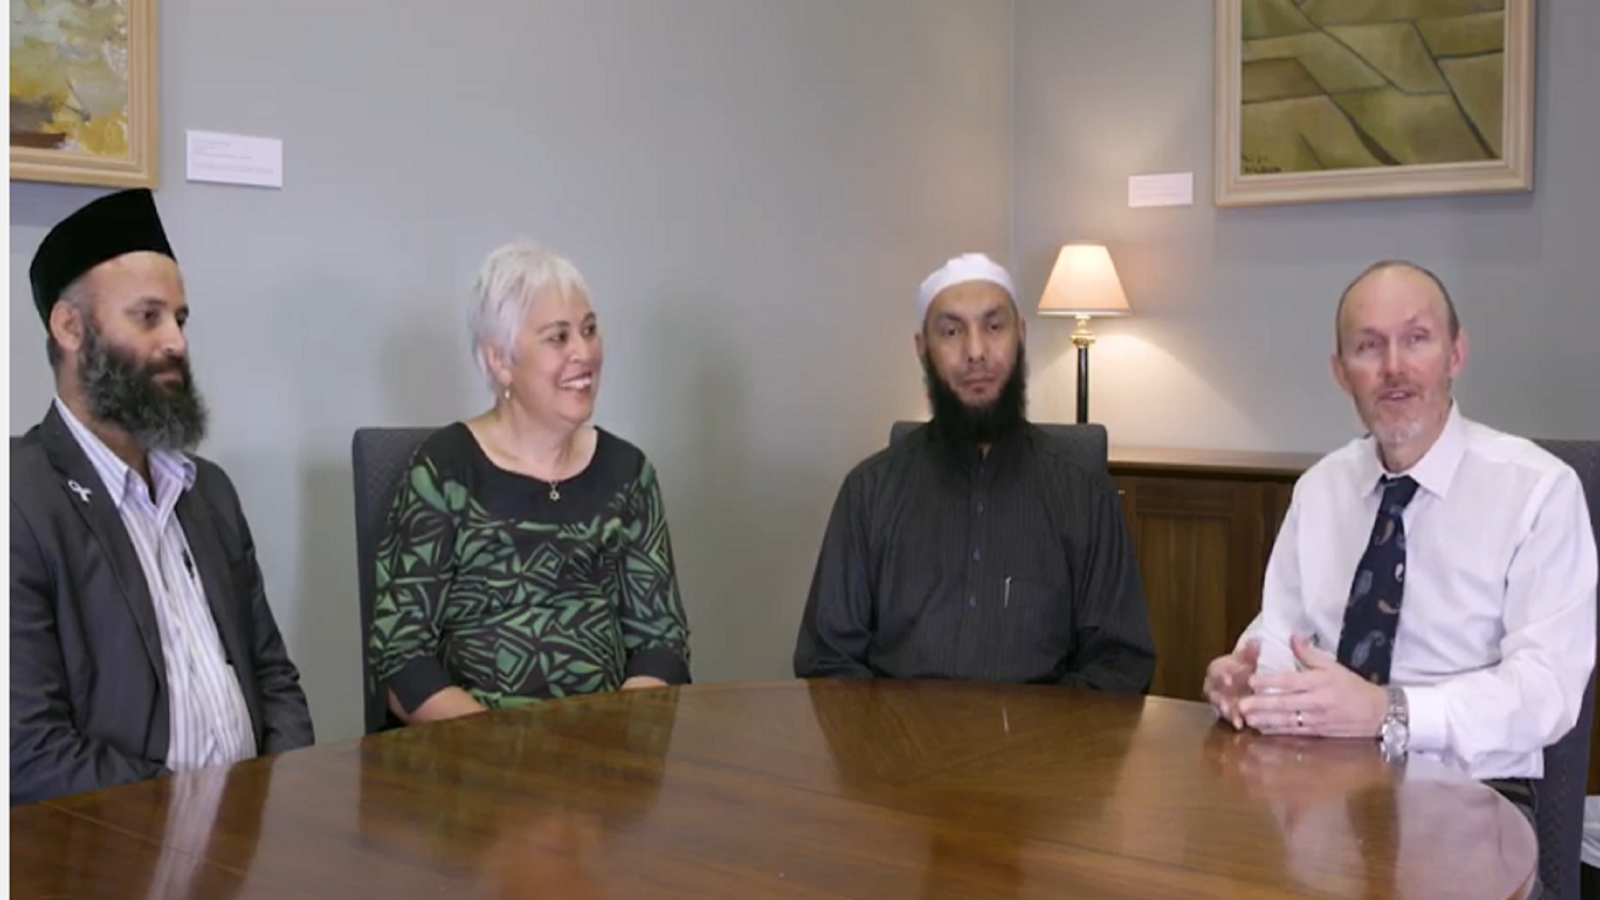 interfaith round table discussion